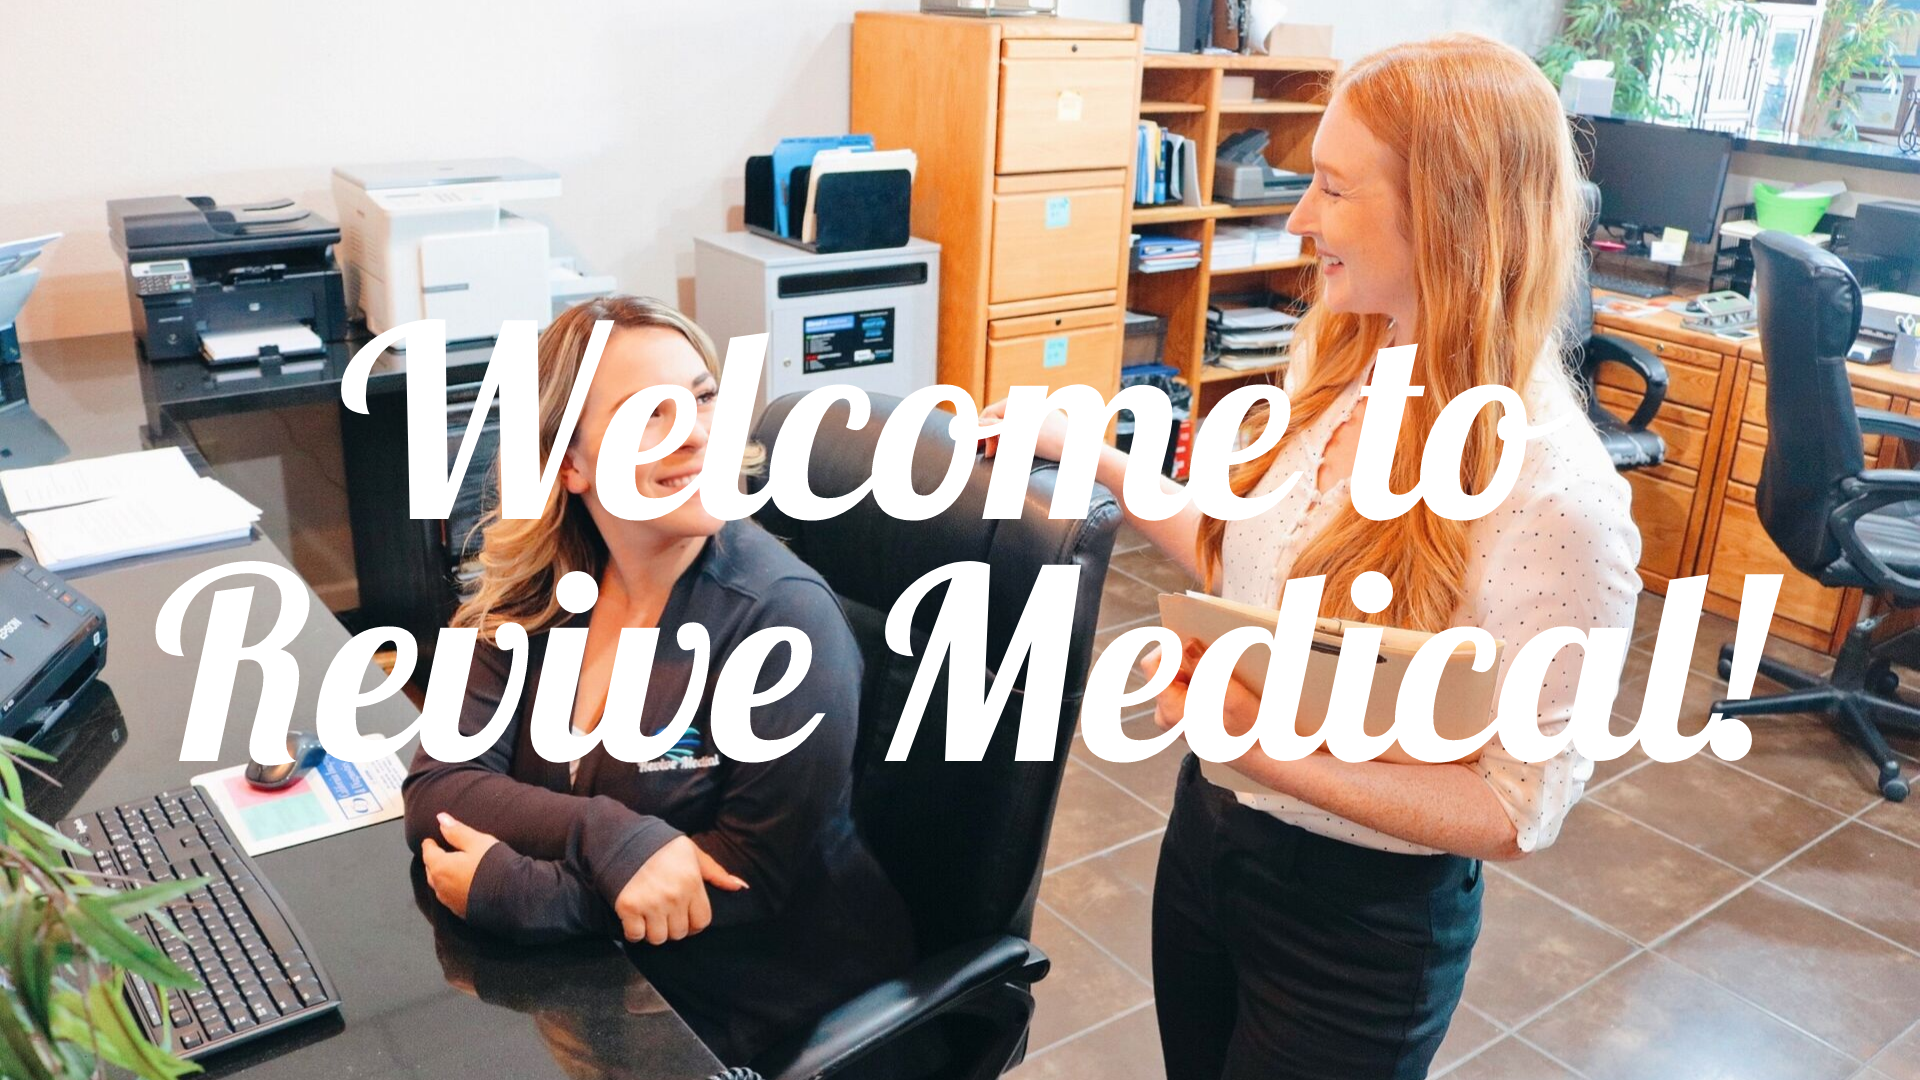 Welcome to Revive Medical! (1).png